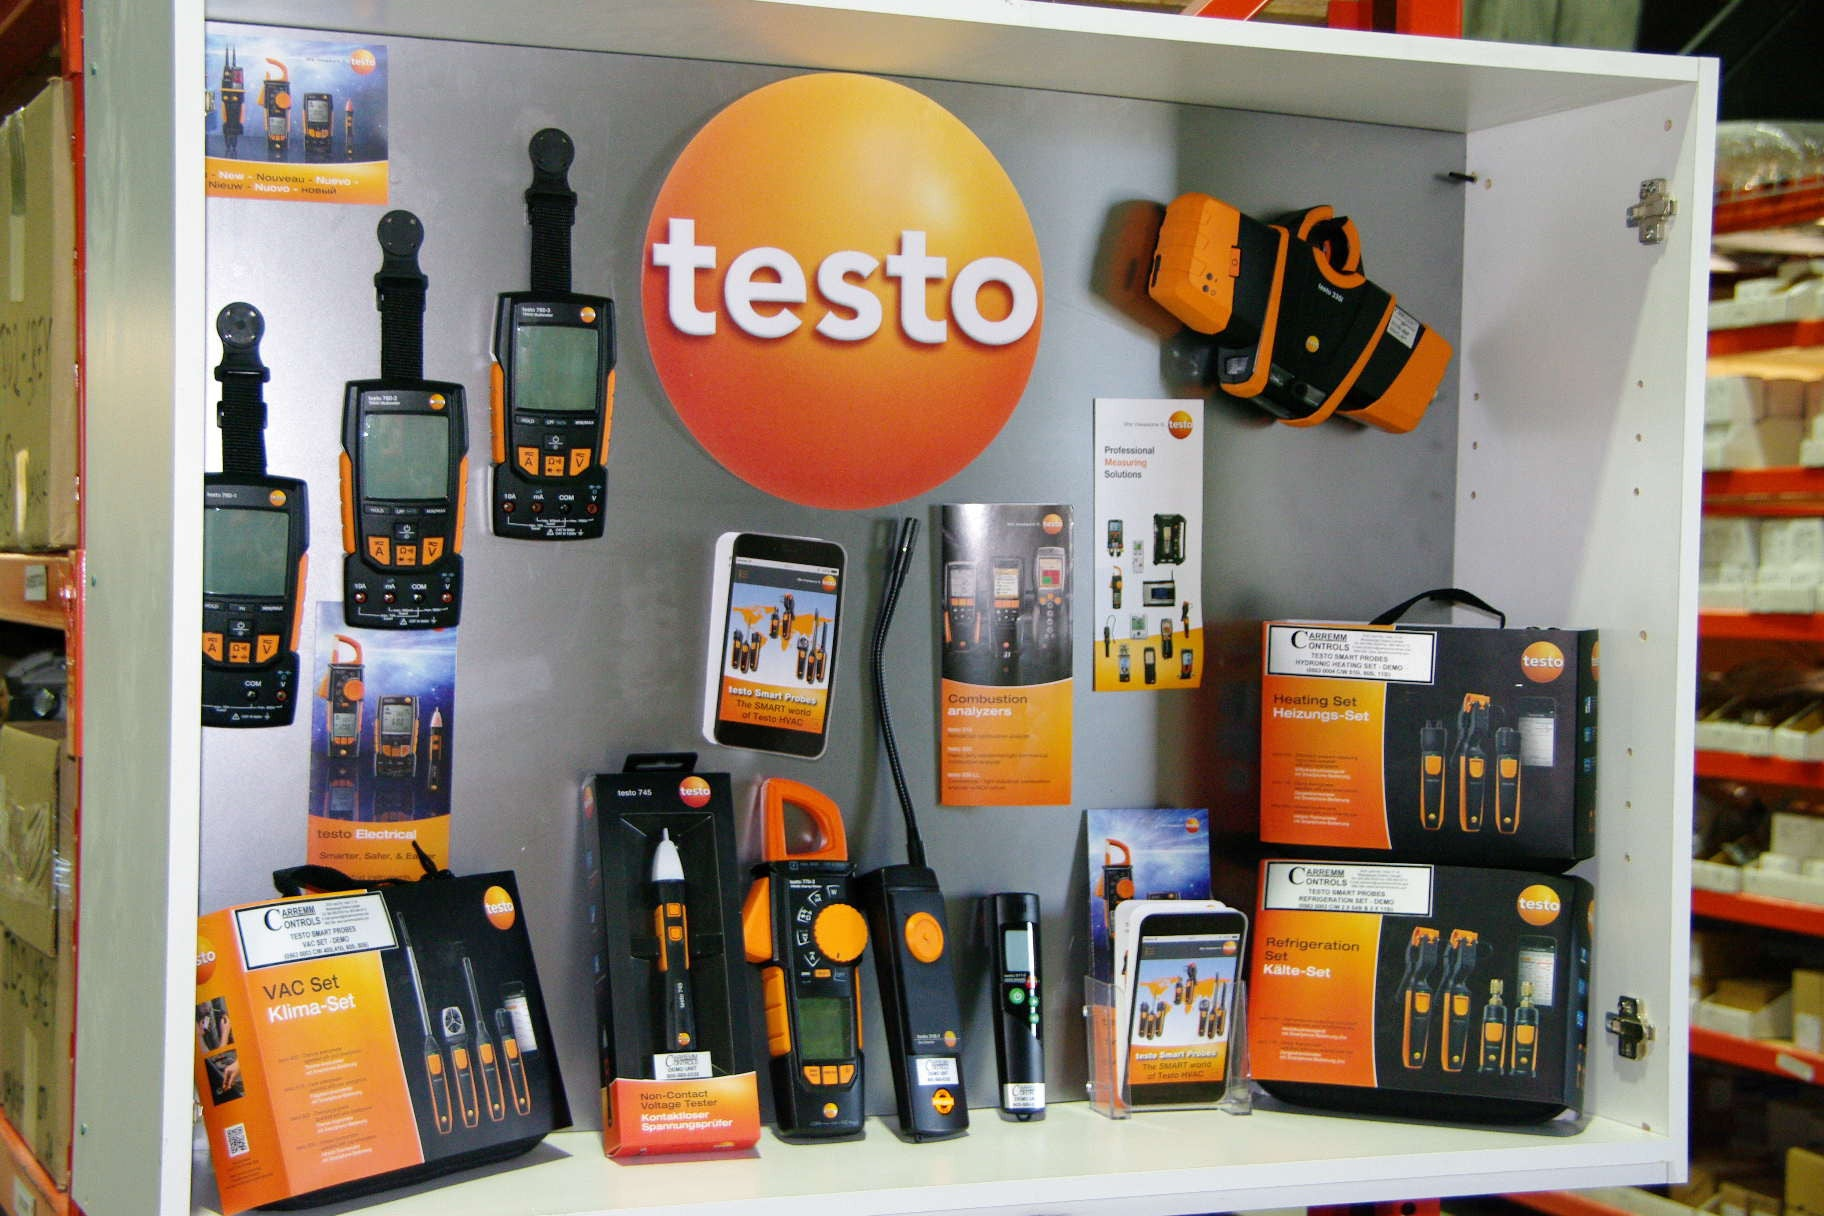 Testo Tagged Ventilation Air Conditioning Measurement Smart Probe 510i All Prices Are In Usd